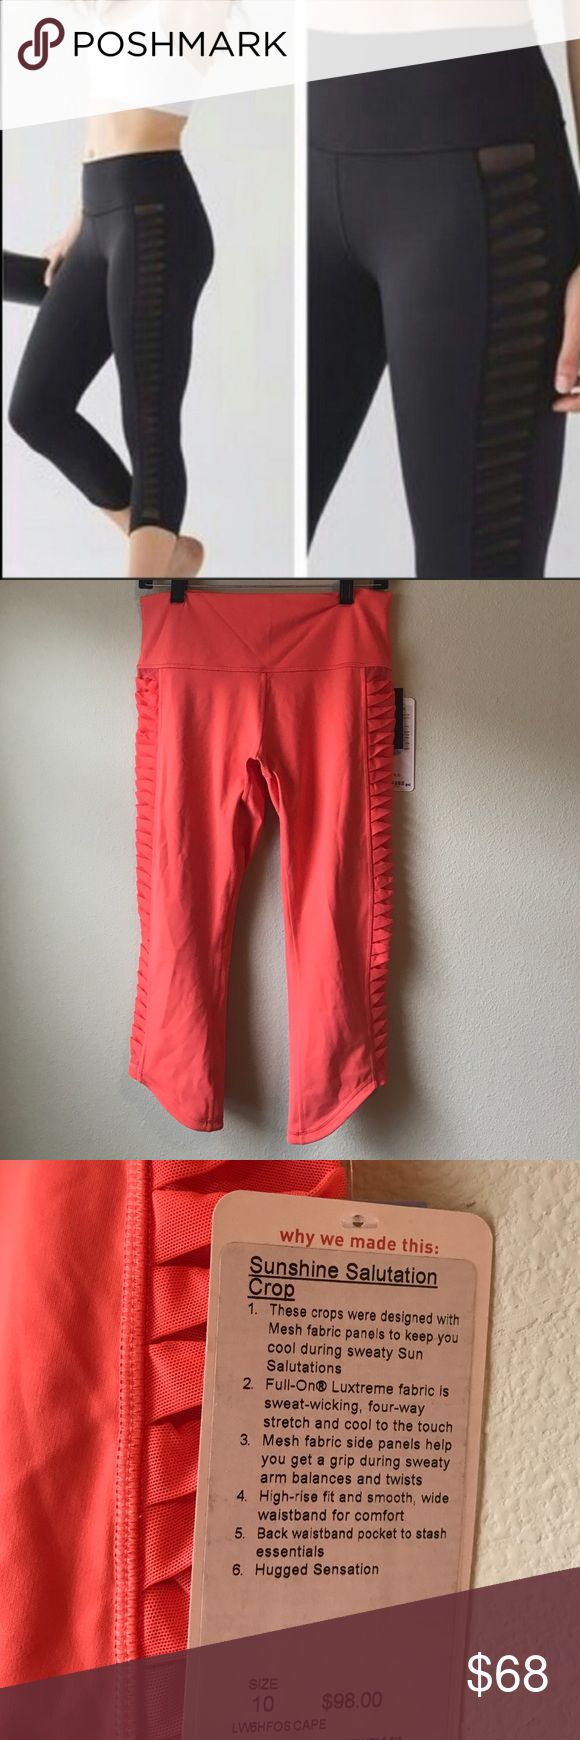 NWT LULULEMON SUNSHINE SALUTATION CROP -- Size 10 Brand: Lululemon Athletica sunshine Salutation crop | Cape Red NOT black | black is stock photo only  Condition: New with tag || Size 10   🚩NO TRADES  🚩NO LOWBALL OFFERS  🚩NO RUDE COMMENTS  🚩NO MODELING  ☀️Please don't discuss prices in the comment box. Make a reasonable offer and I'll either counter, accept or decline.   I will try to respond to all inquiries in a timely manner. Please check out the rest of my closet, I have various…